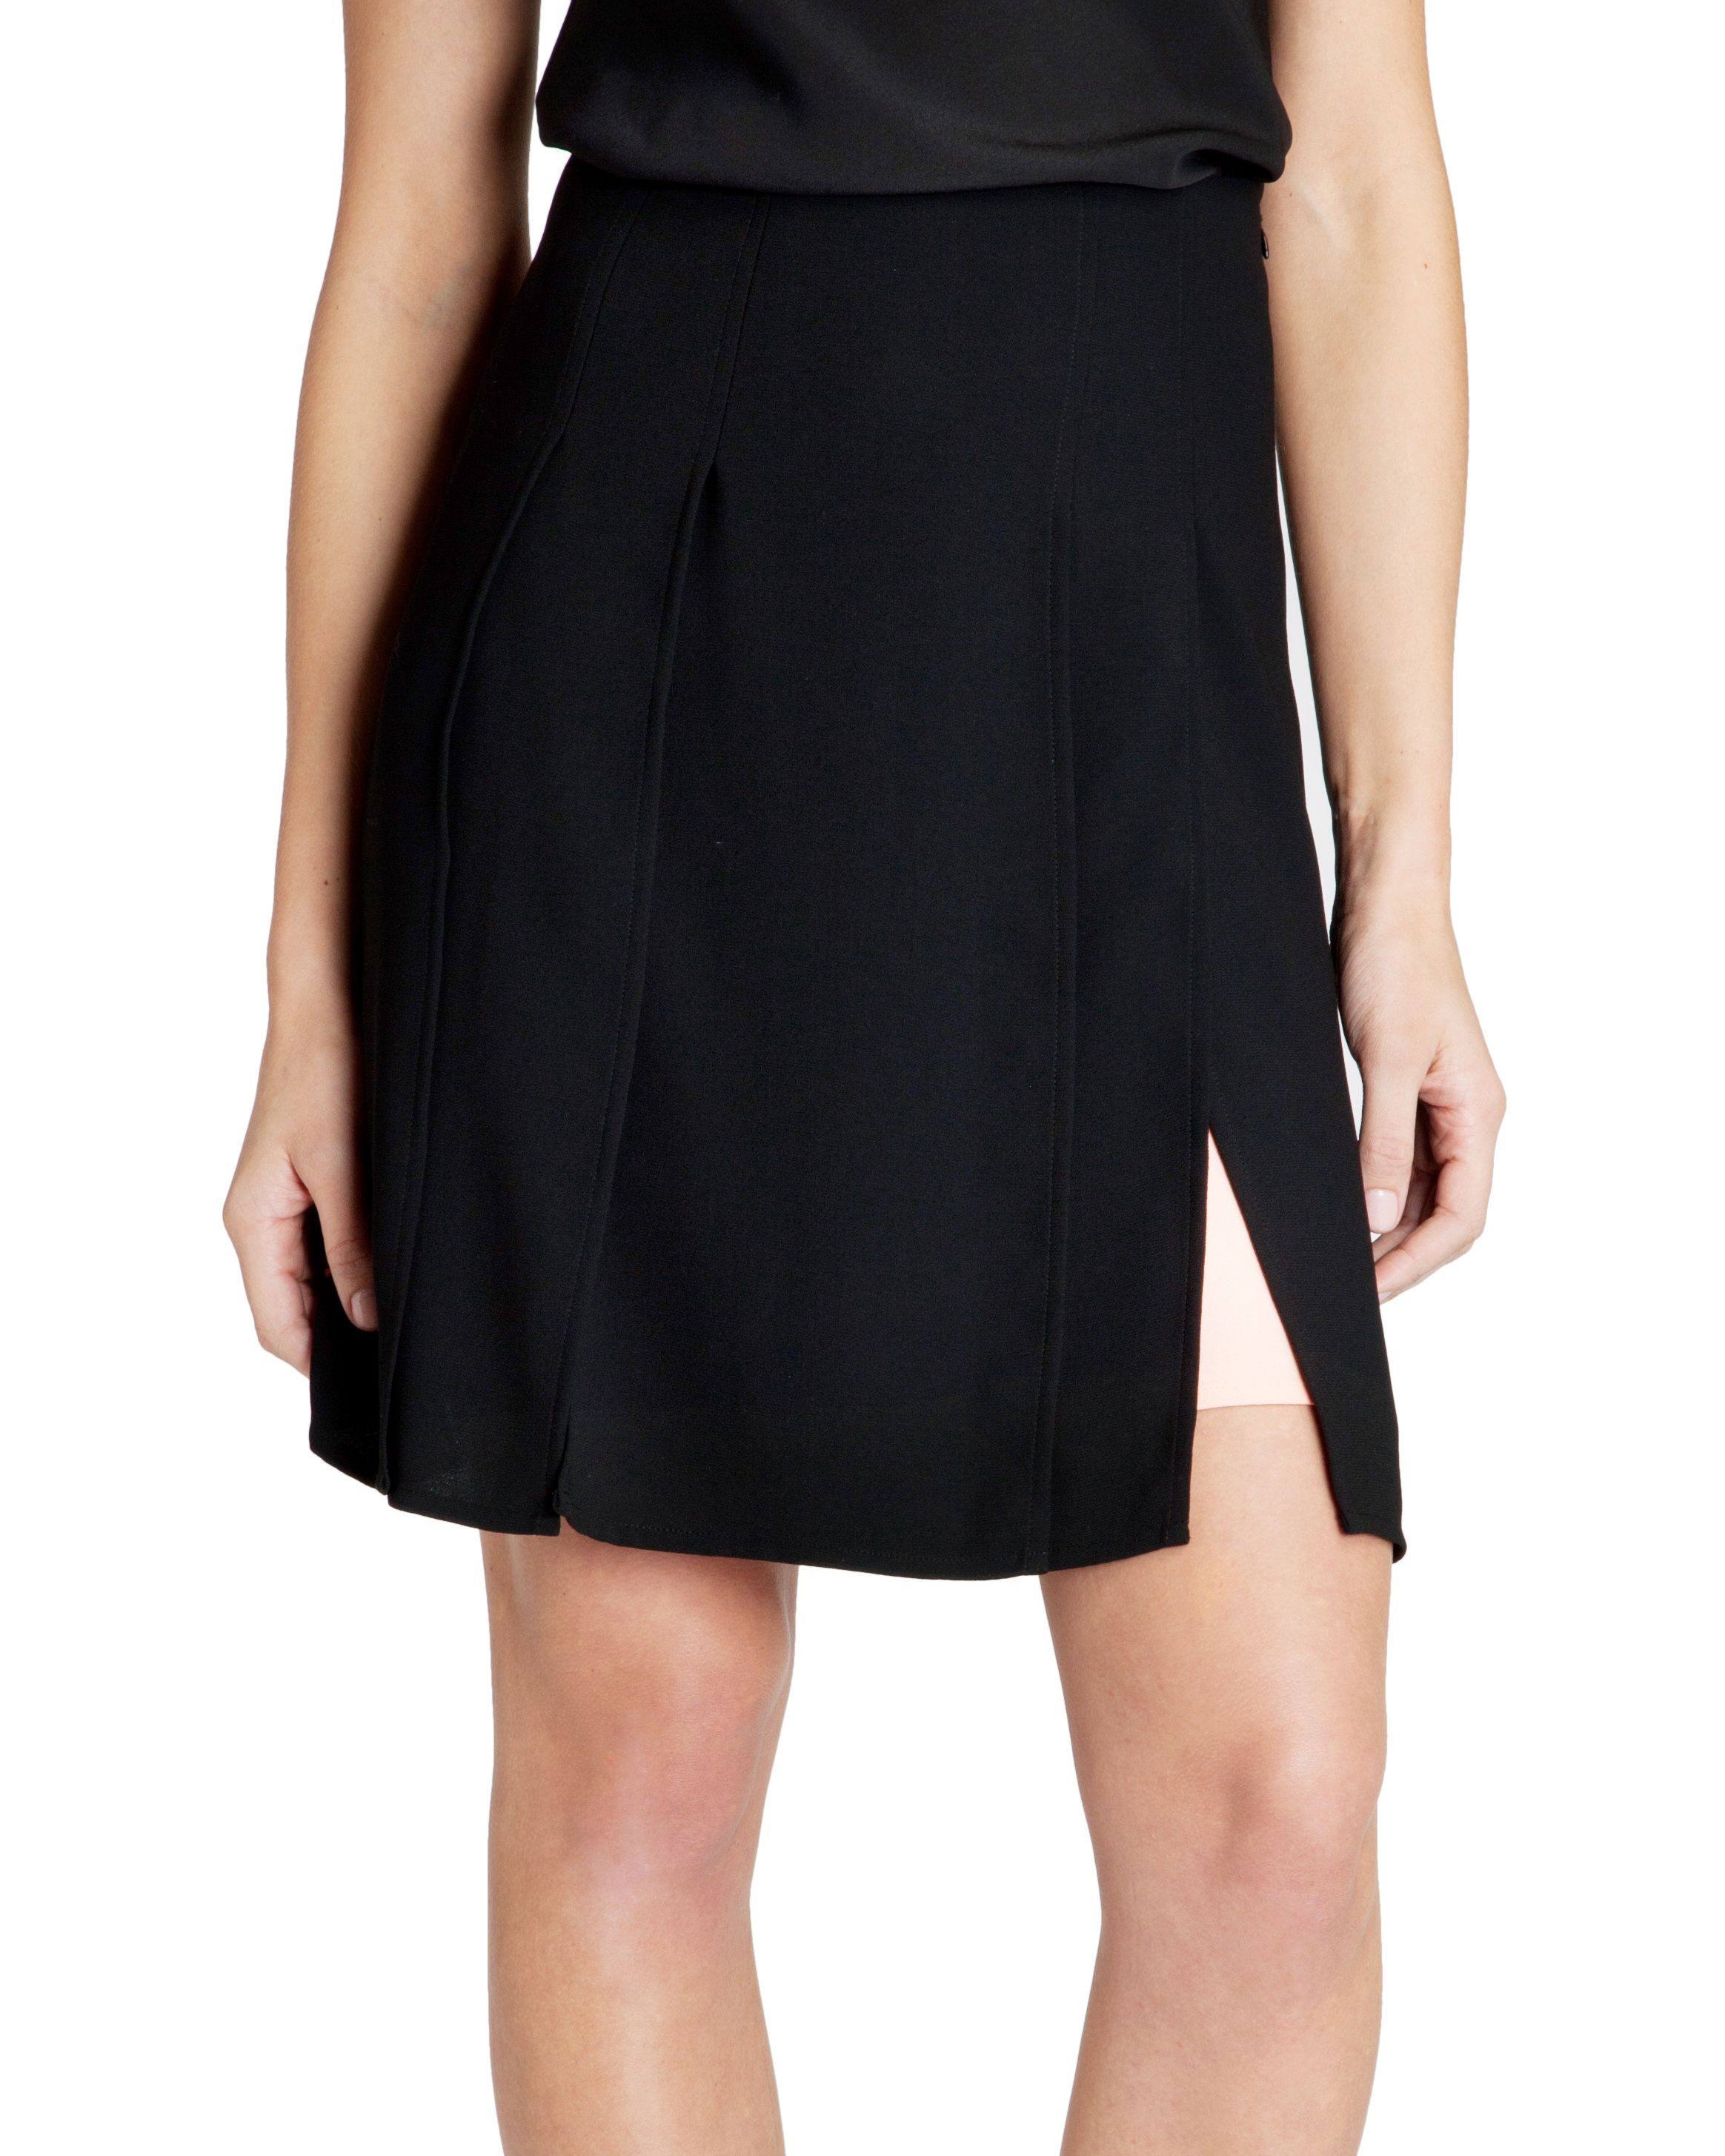 Rheia overlapping panel skirt